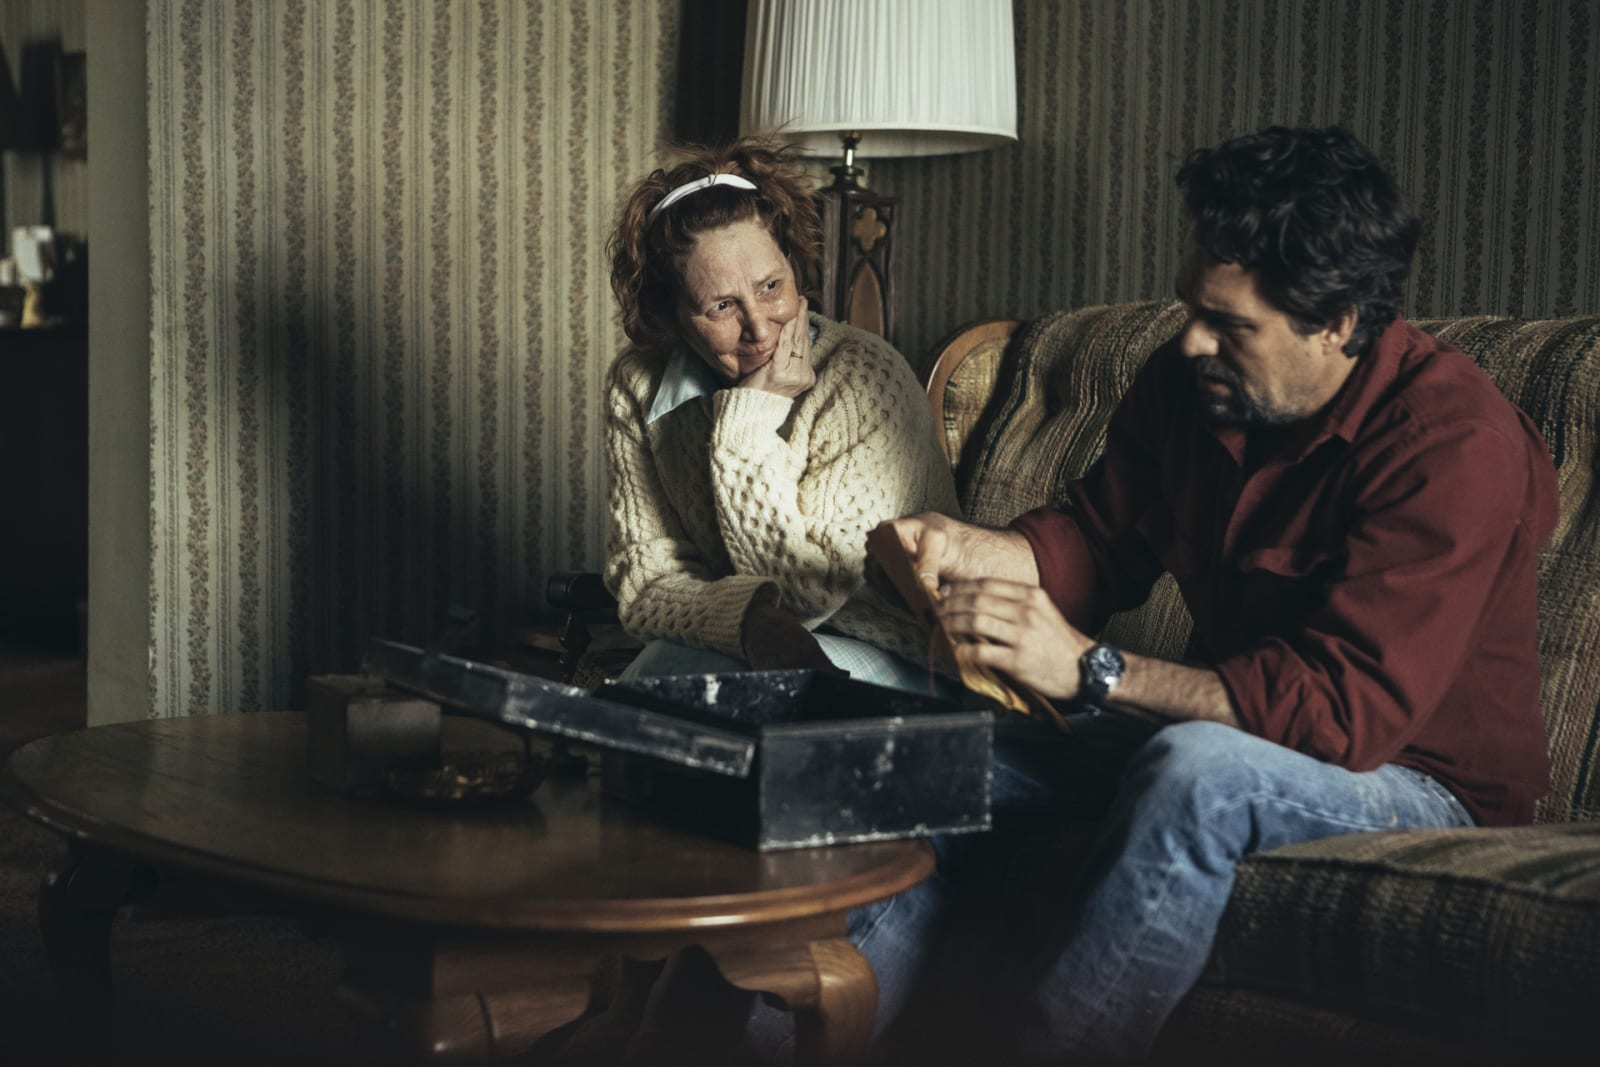 Mark Ruffalo and Melissa Leo in Episode 1 of I Know This Much Is True